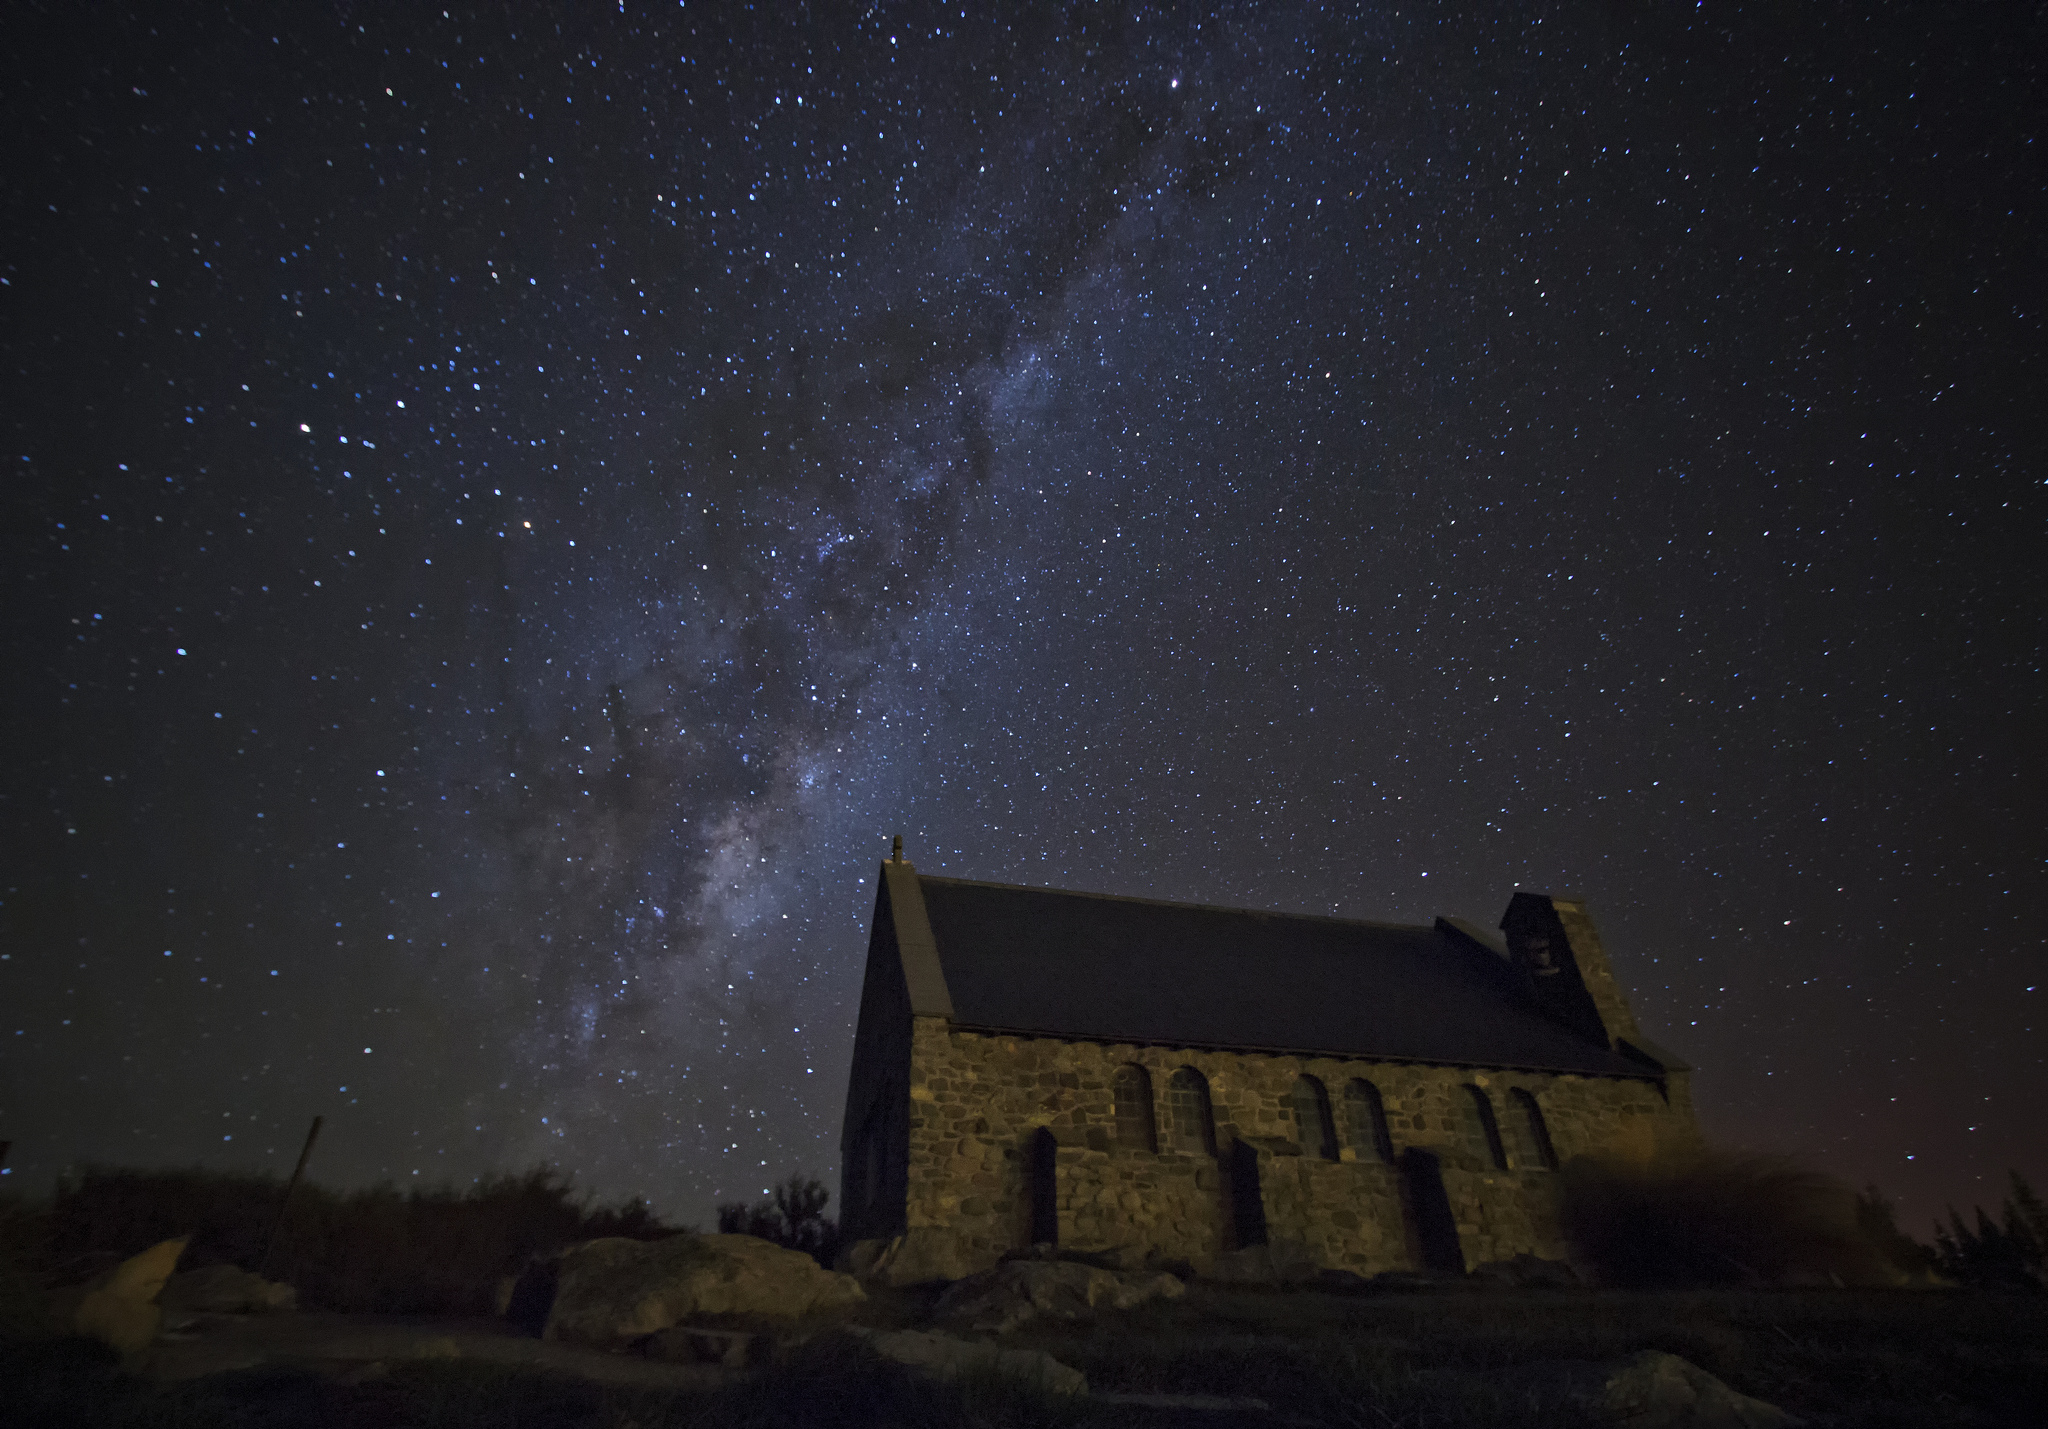 The Church of the Good Shepherd at night. Photo by  Jose Gallego  via  flickr .